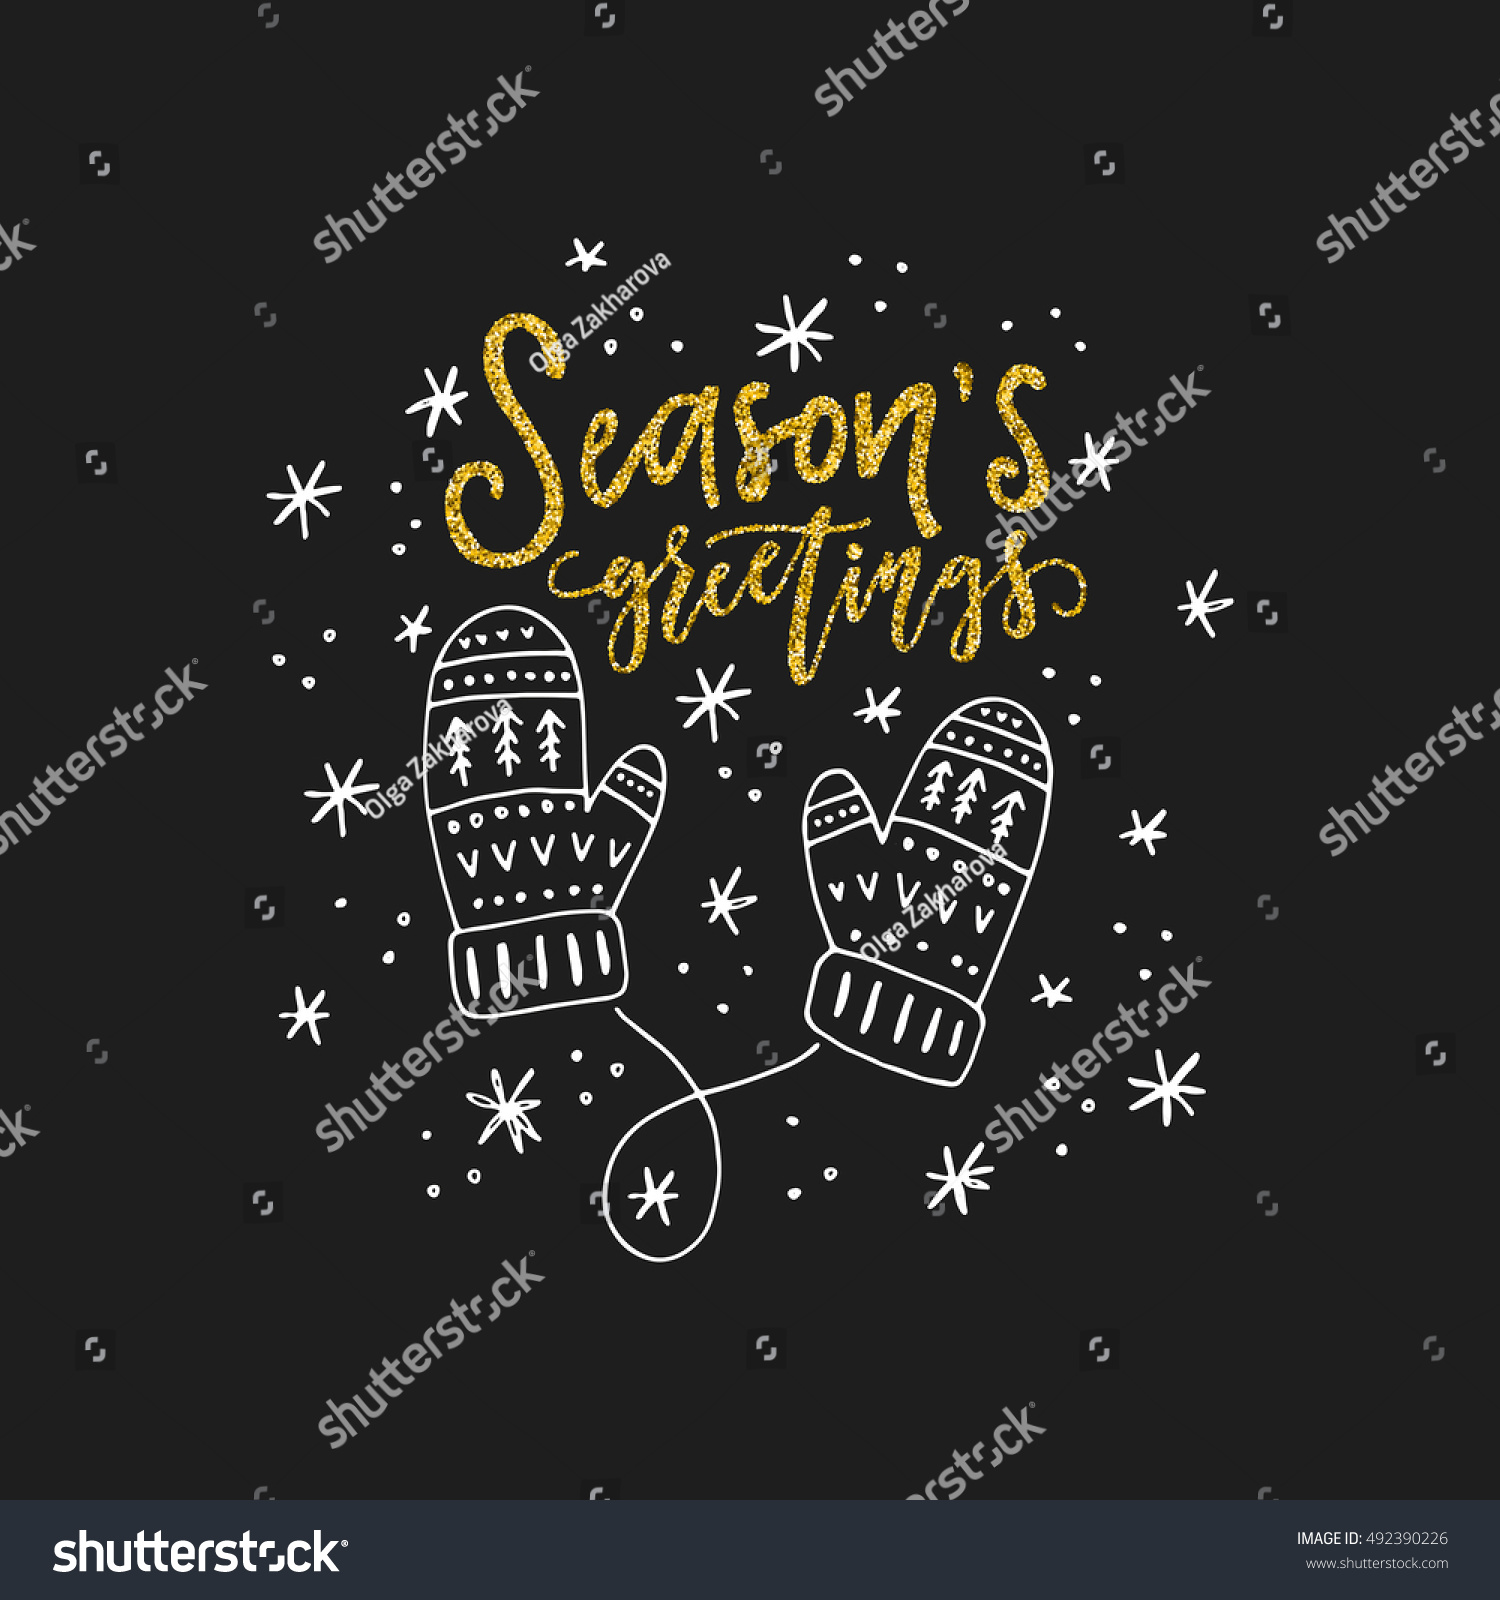 Stock images royalty free images vectors shutterstock lettering seasons greetings and illustration of a mittens unique christmas card design kristyandbryce Image collections